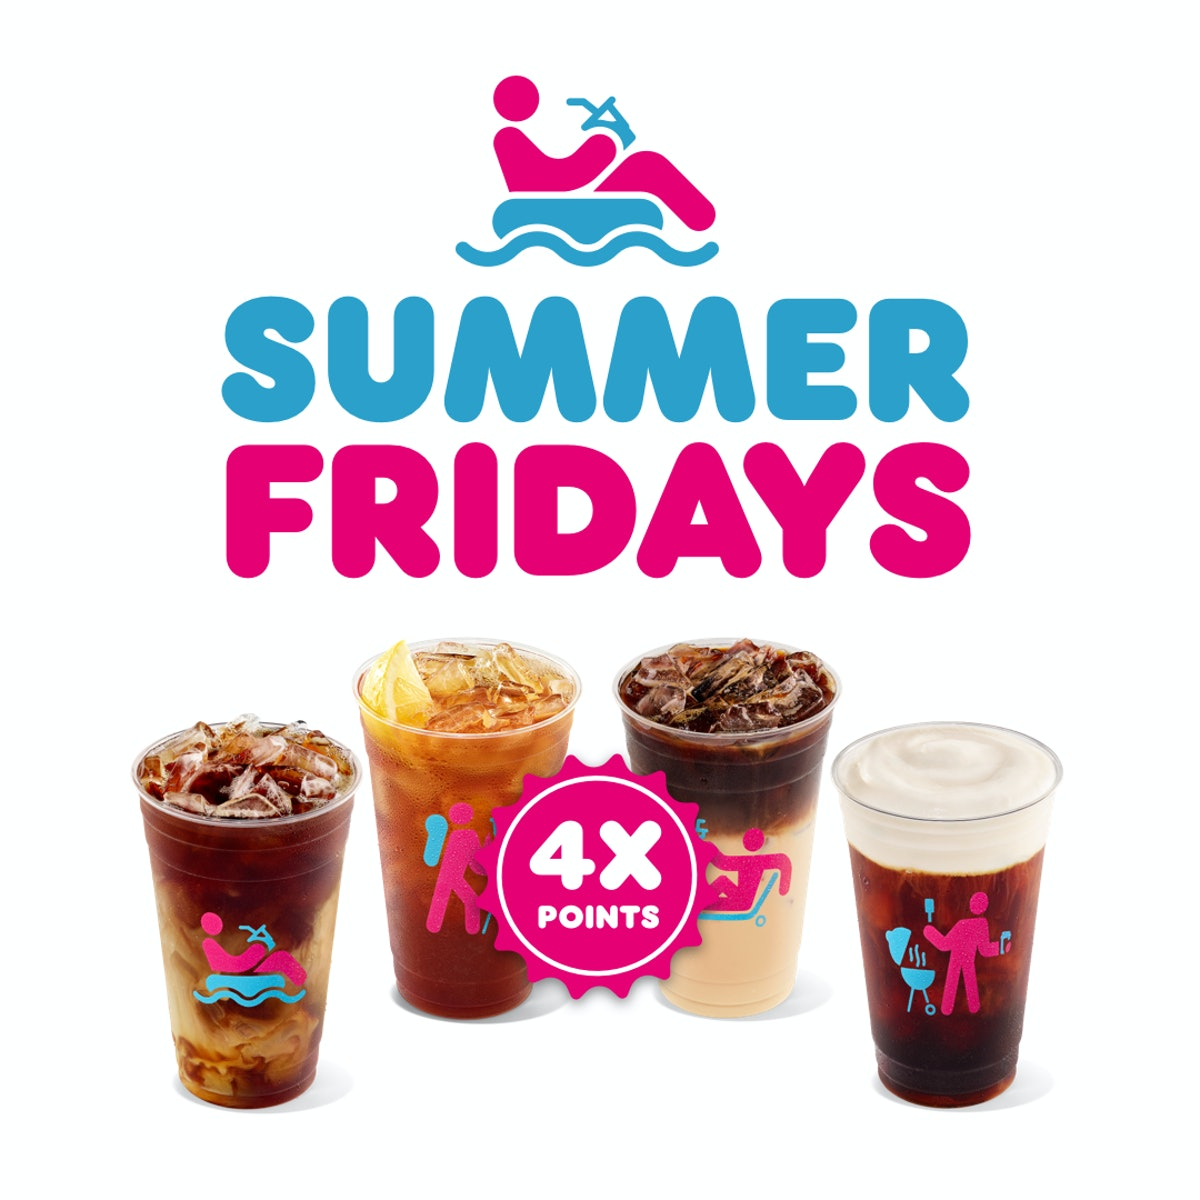 Dunkin's Summer Fridays 2021 deal will score you four times the points on iced sips.